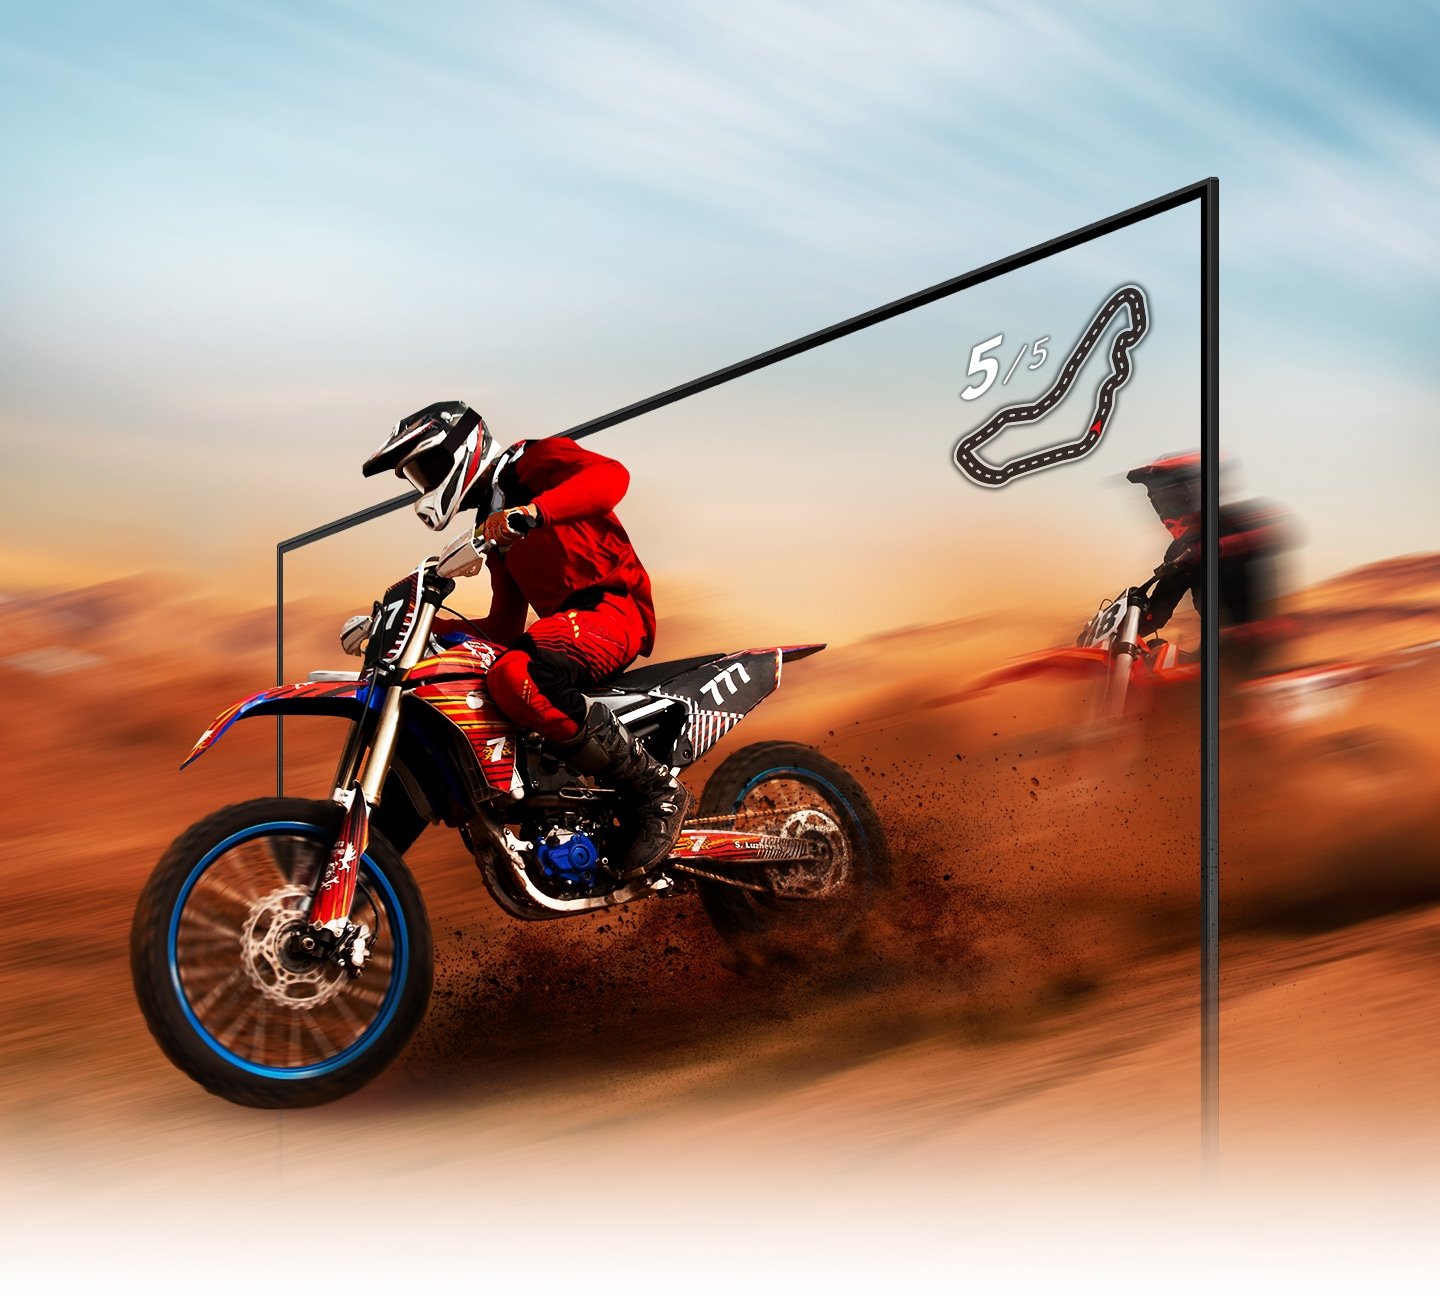 A dirt bike racer looks clear and visible inside the QLED TV screen because of QLED TV motion xcelerator technology.